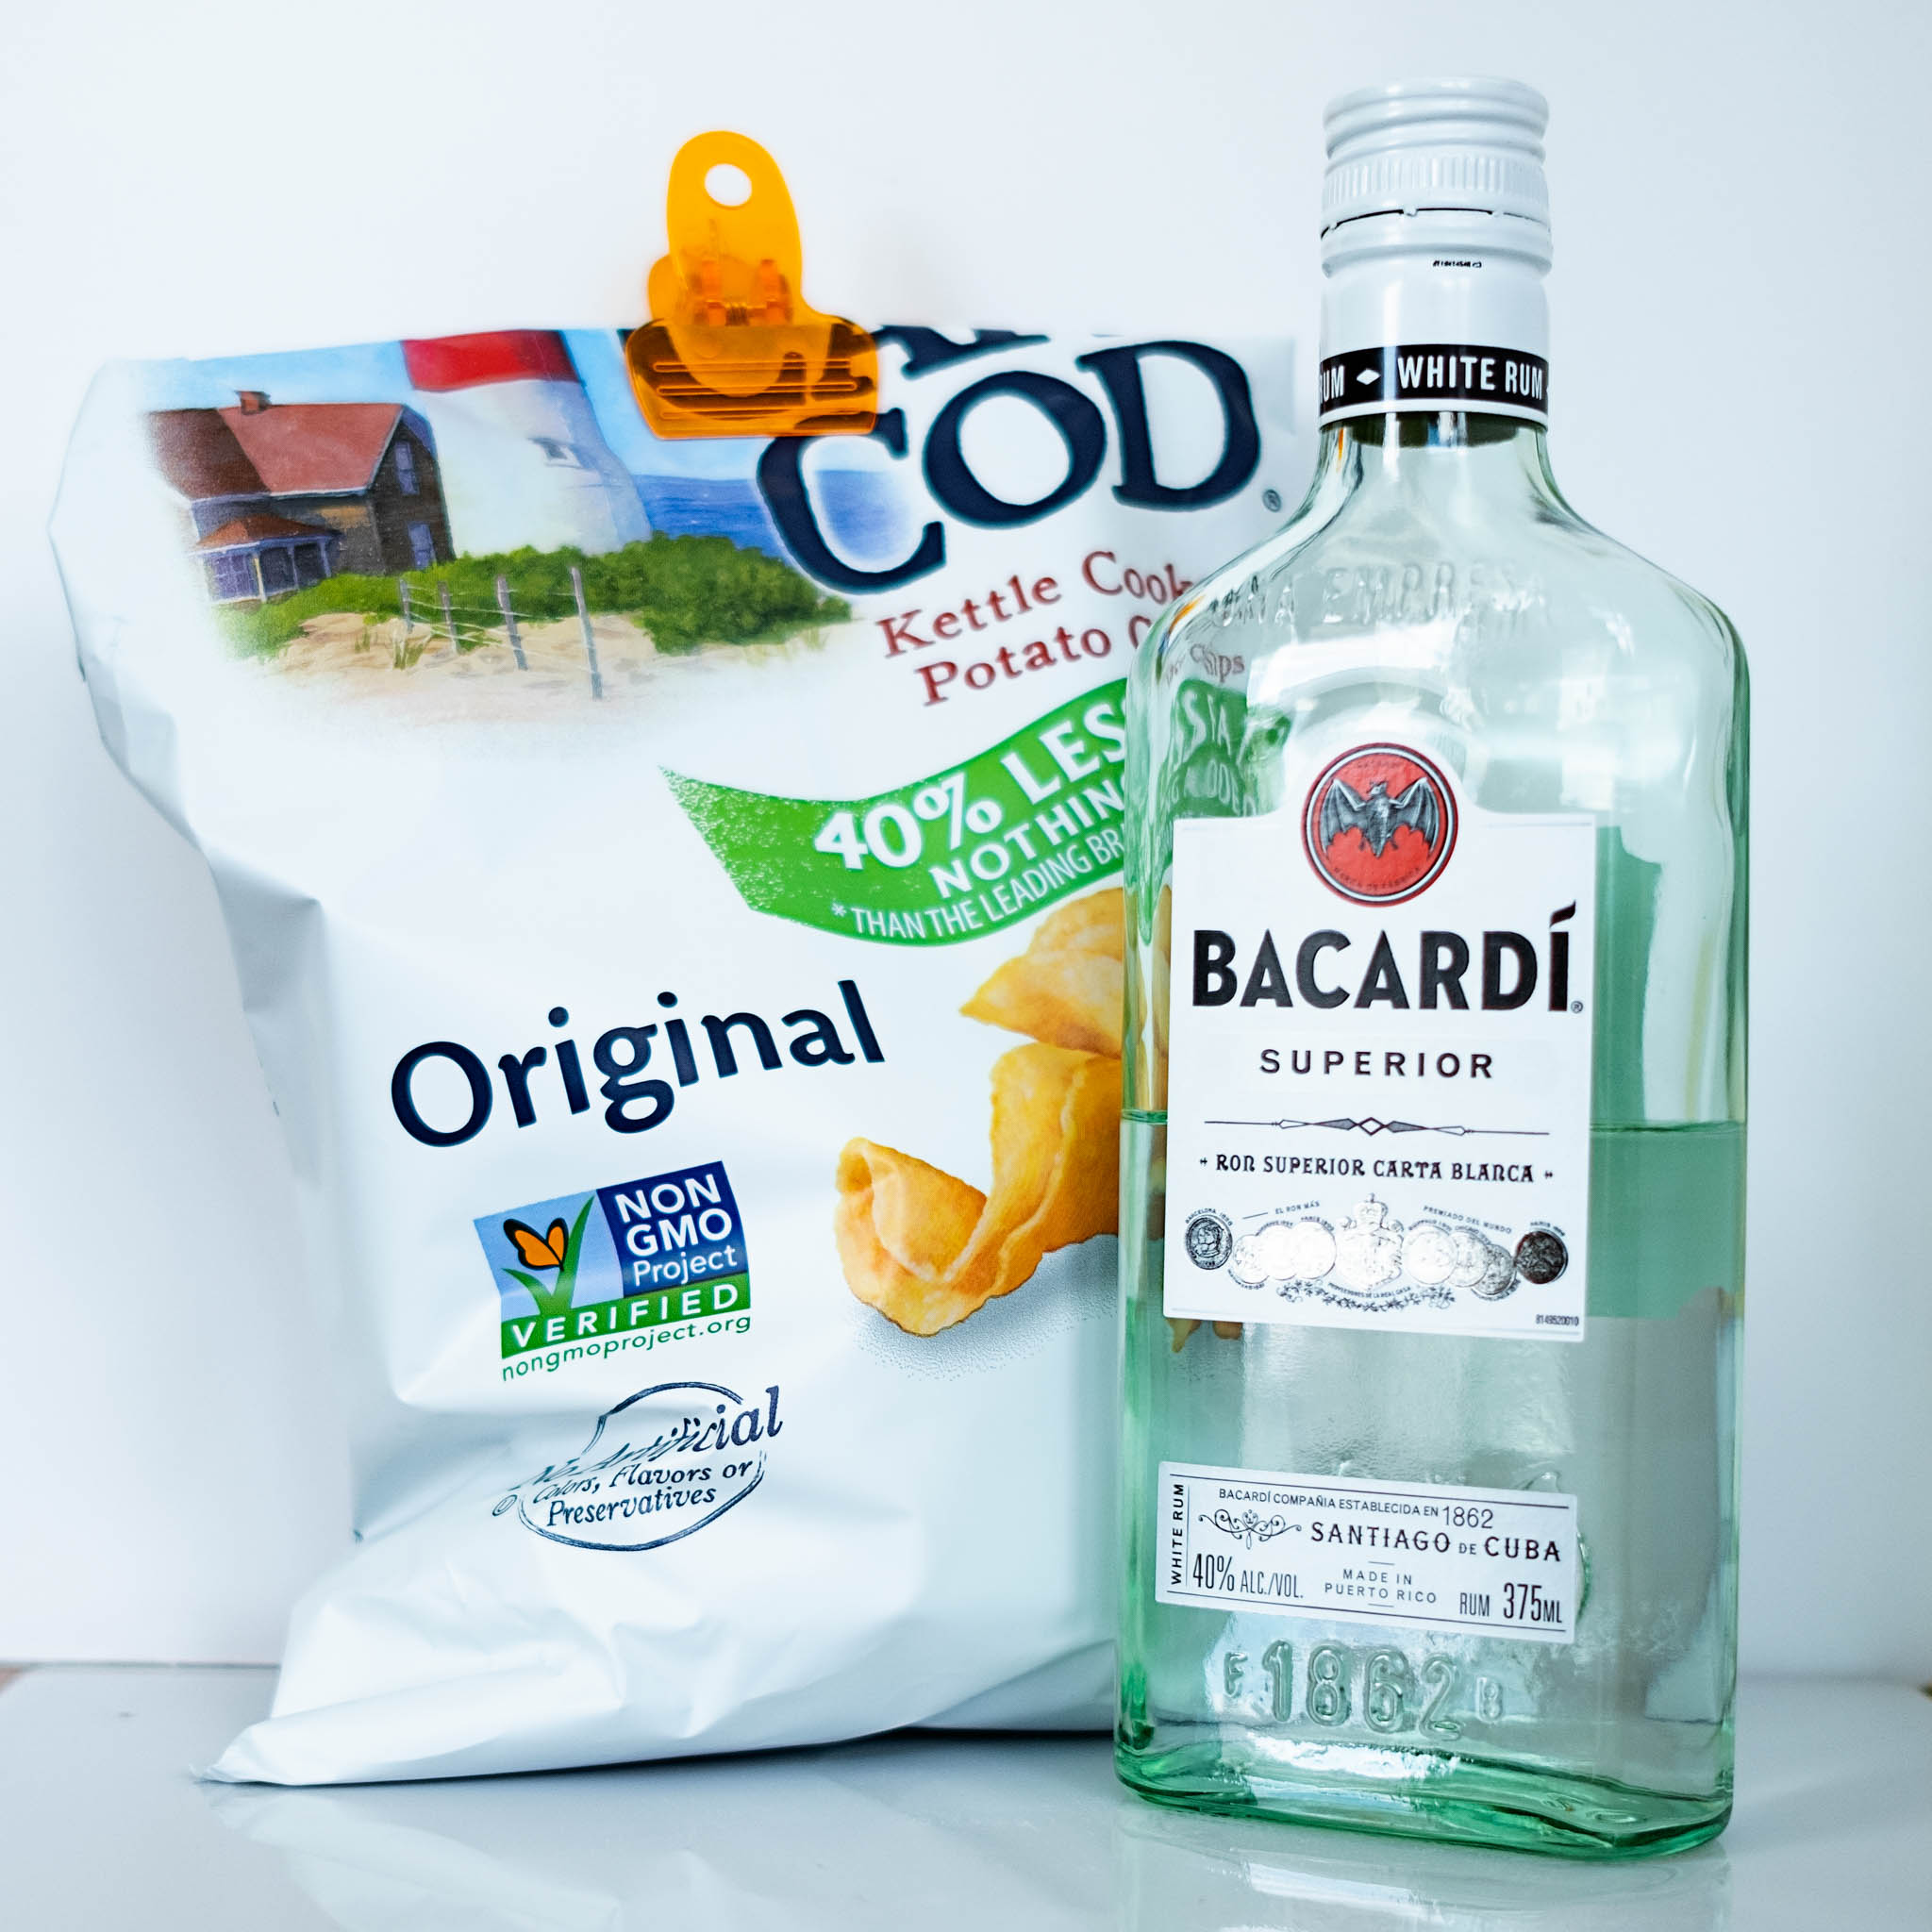 Meal of Cape Cod potato chips and Bacardi Rum photographed by Kathleen Kent